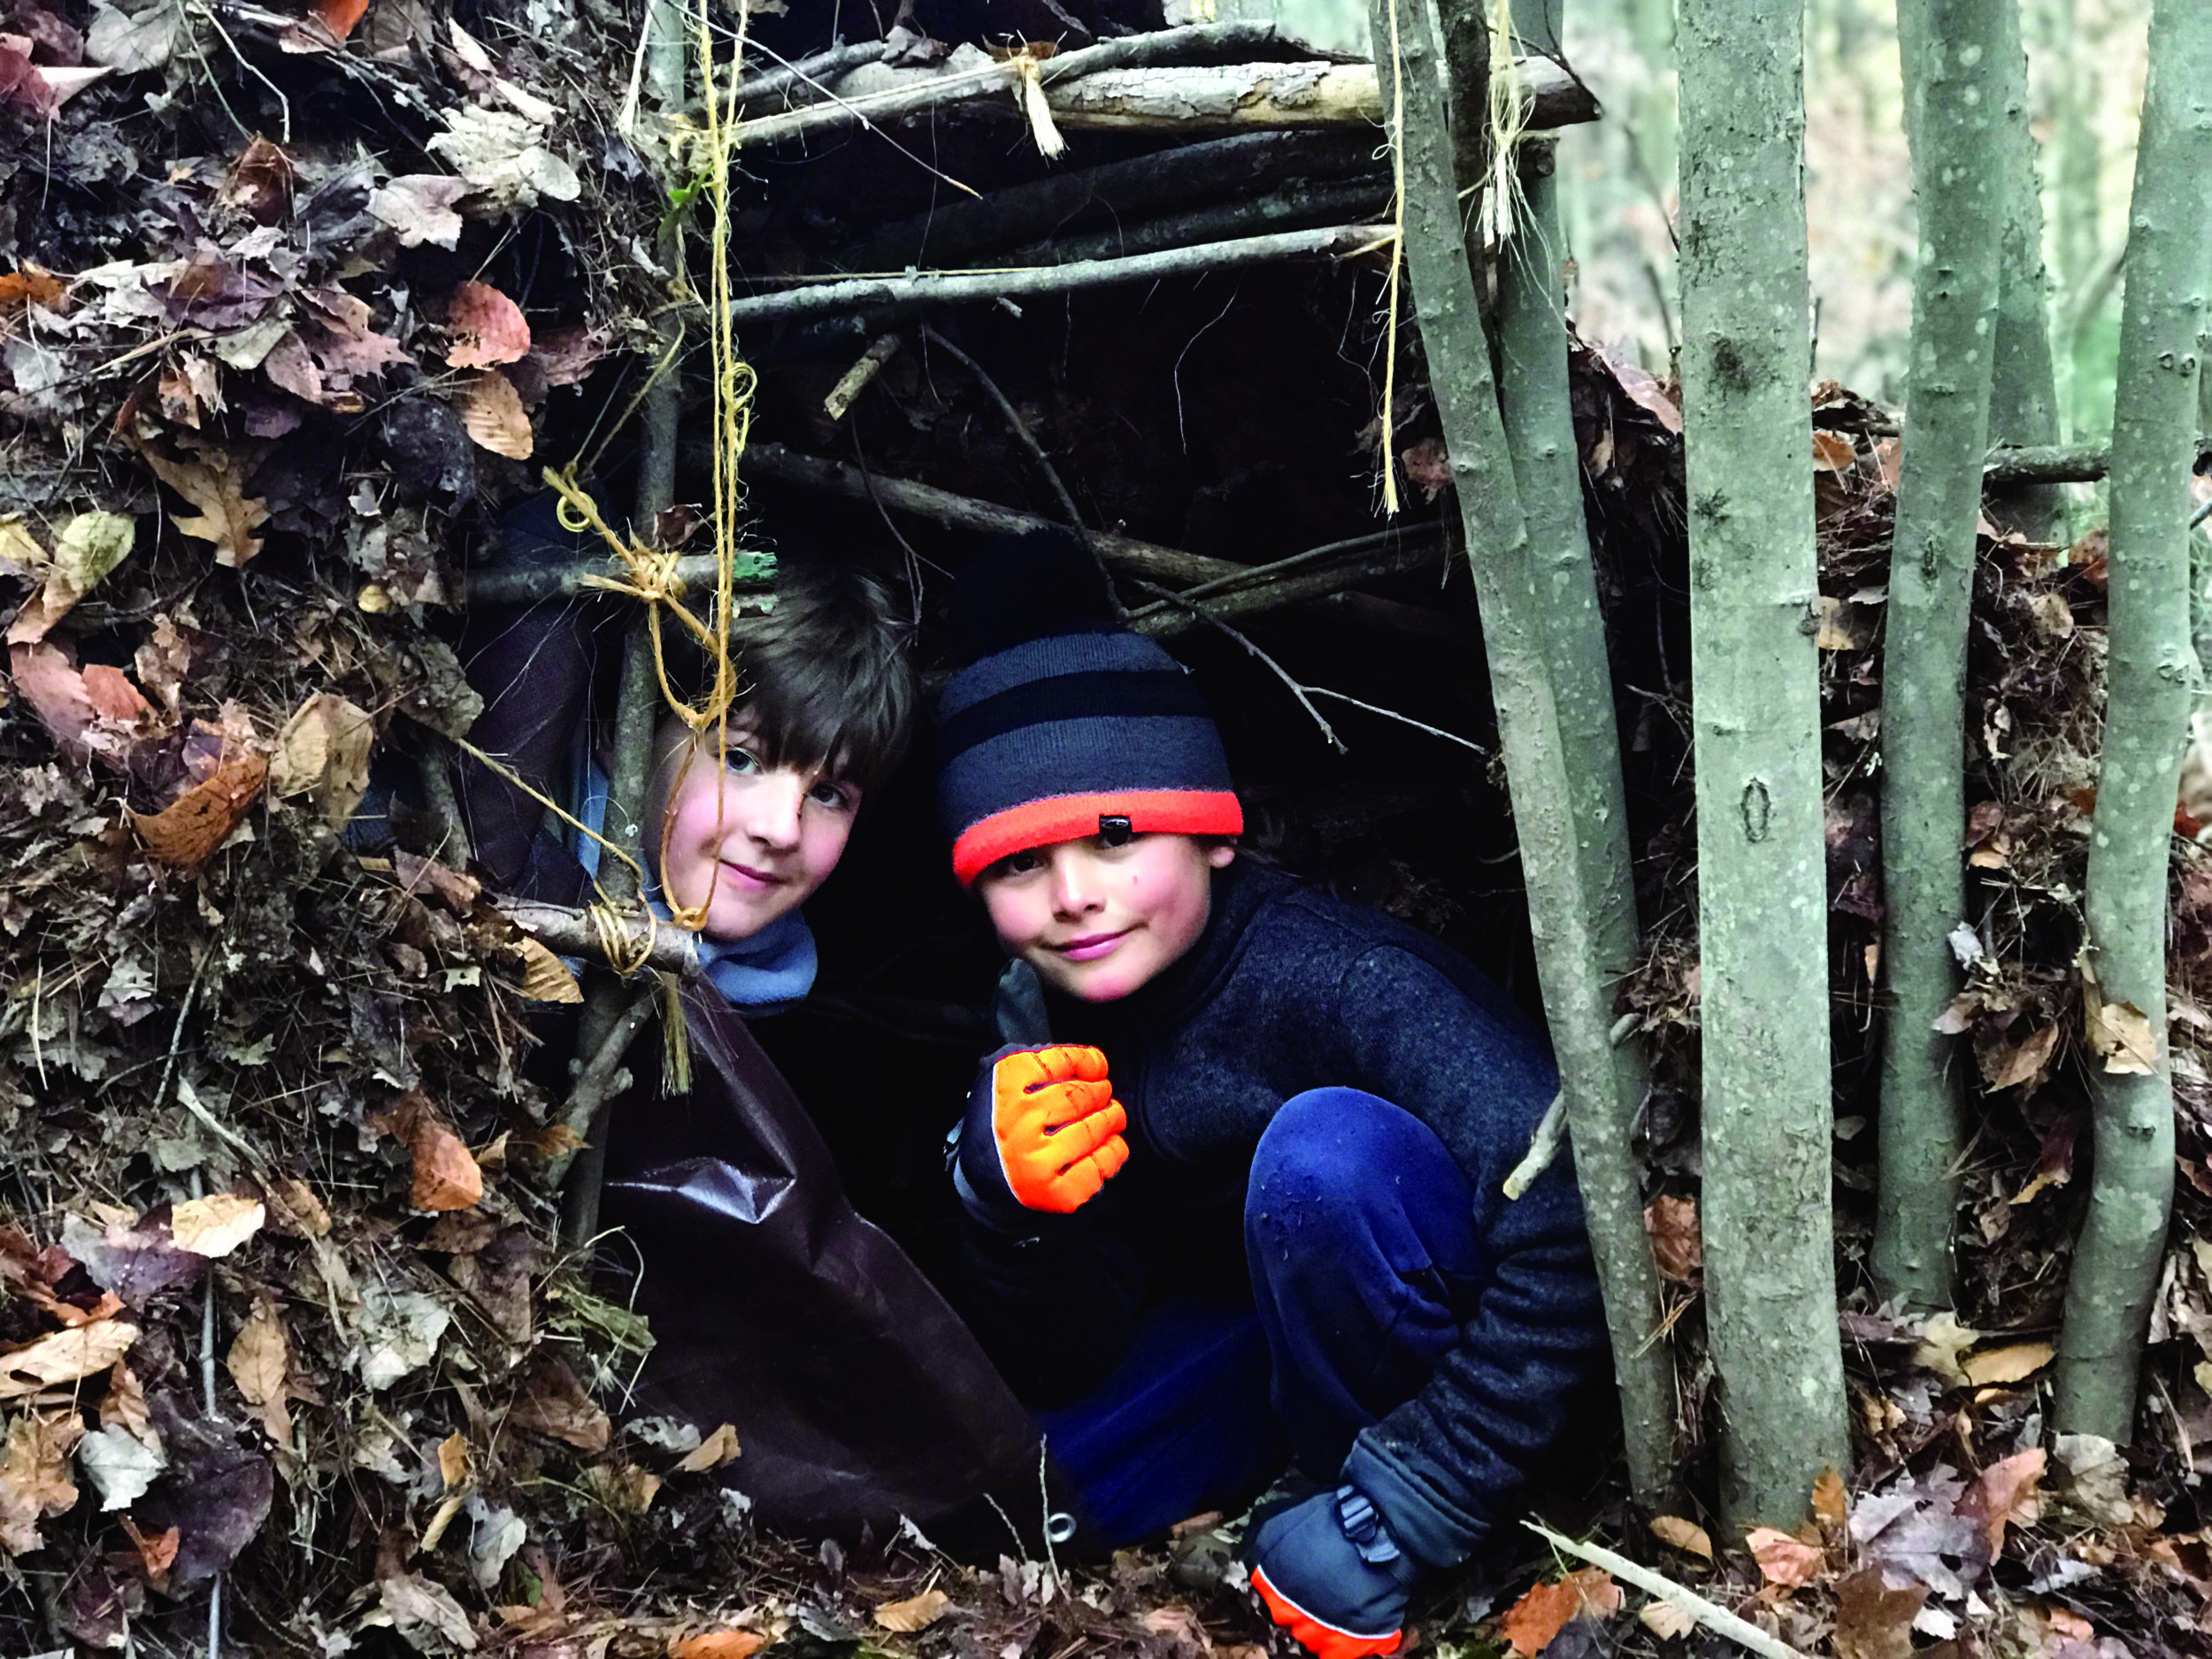 Fifth graders Robbie and Teo in their shelter